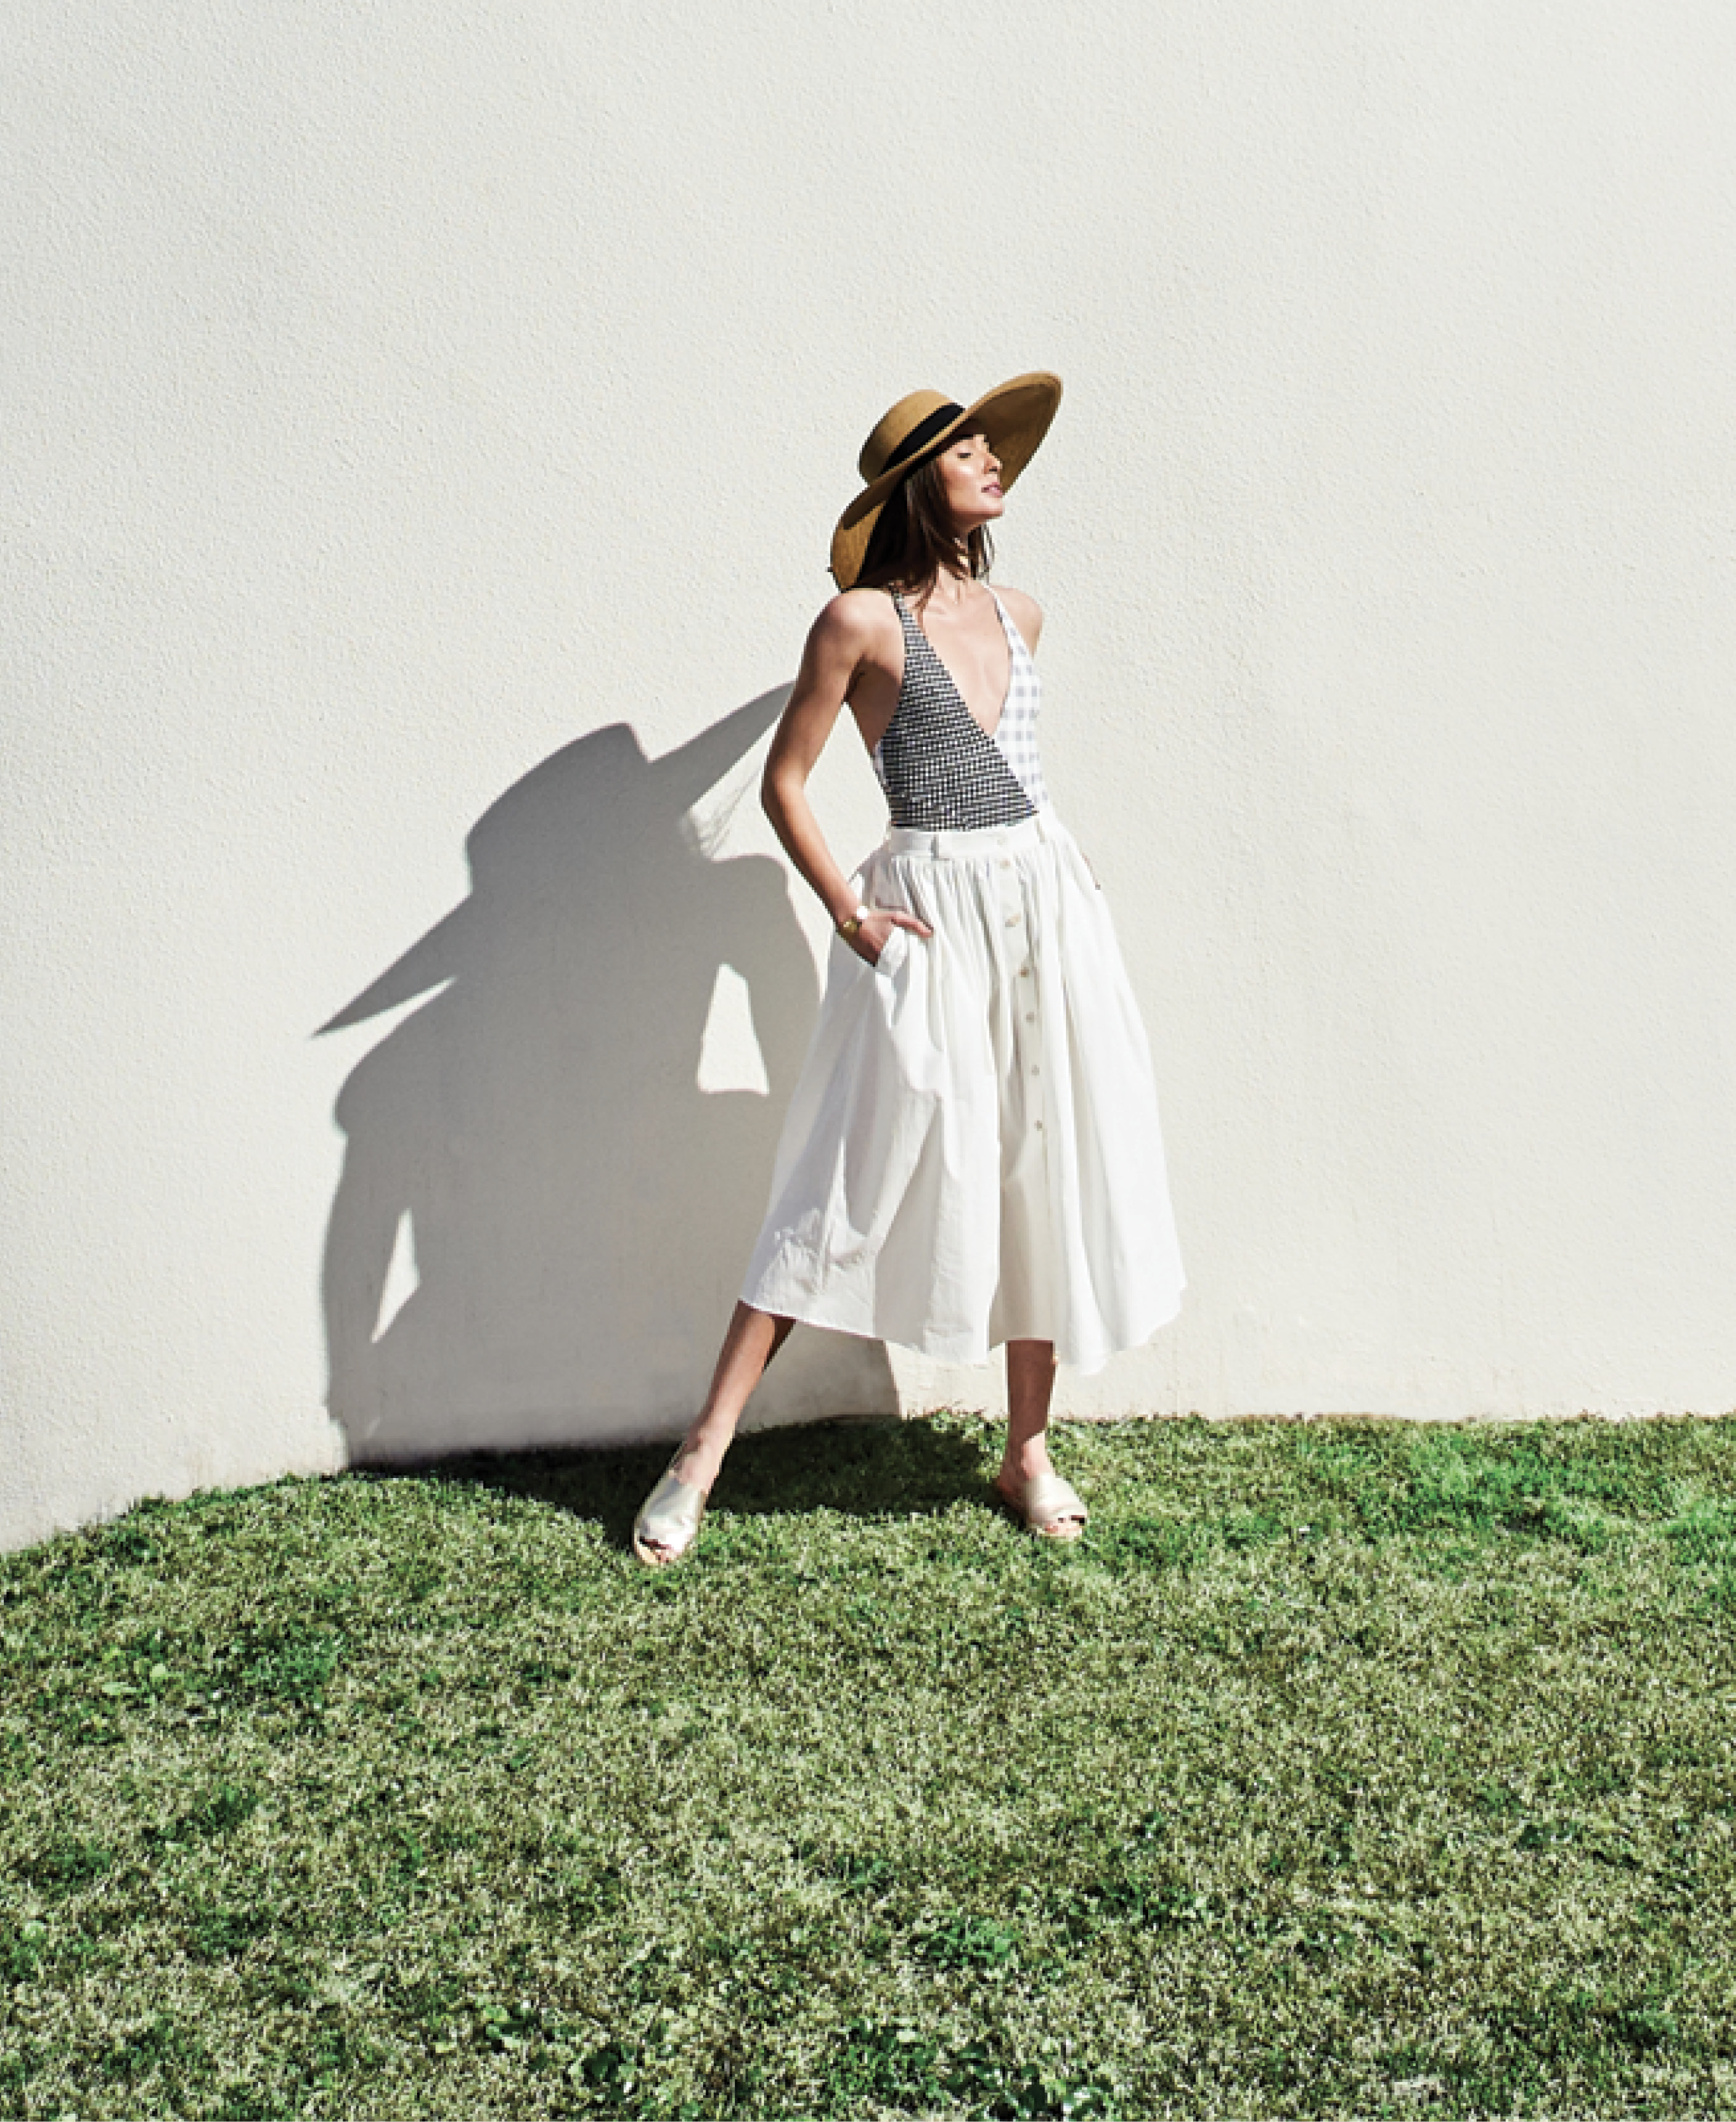 """SUIT UP - Marysia """"Suffolk Maillot,"""" $359 at Everything ButWater; Brock Collection cotton """"Olivo"""" button-up skirt, price upon request at RTW; Gretchen Scott sun hat, $59 at Gretchen Scott; Kendra Scott """"Tenley"""" 14K gold-plate cuff, $95 at Kendra Scott; Sam Edelman """"Andy"""" leather slide in """"light gold,"""" $90 at Shoes on King"""